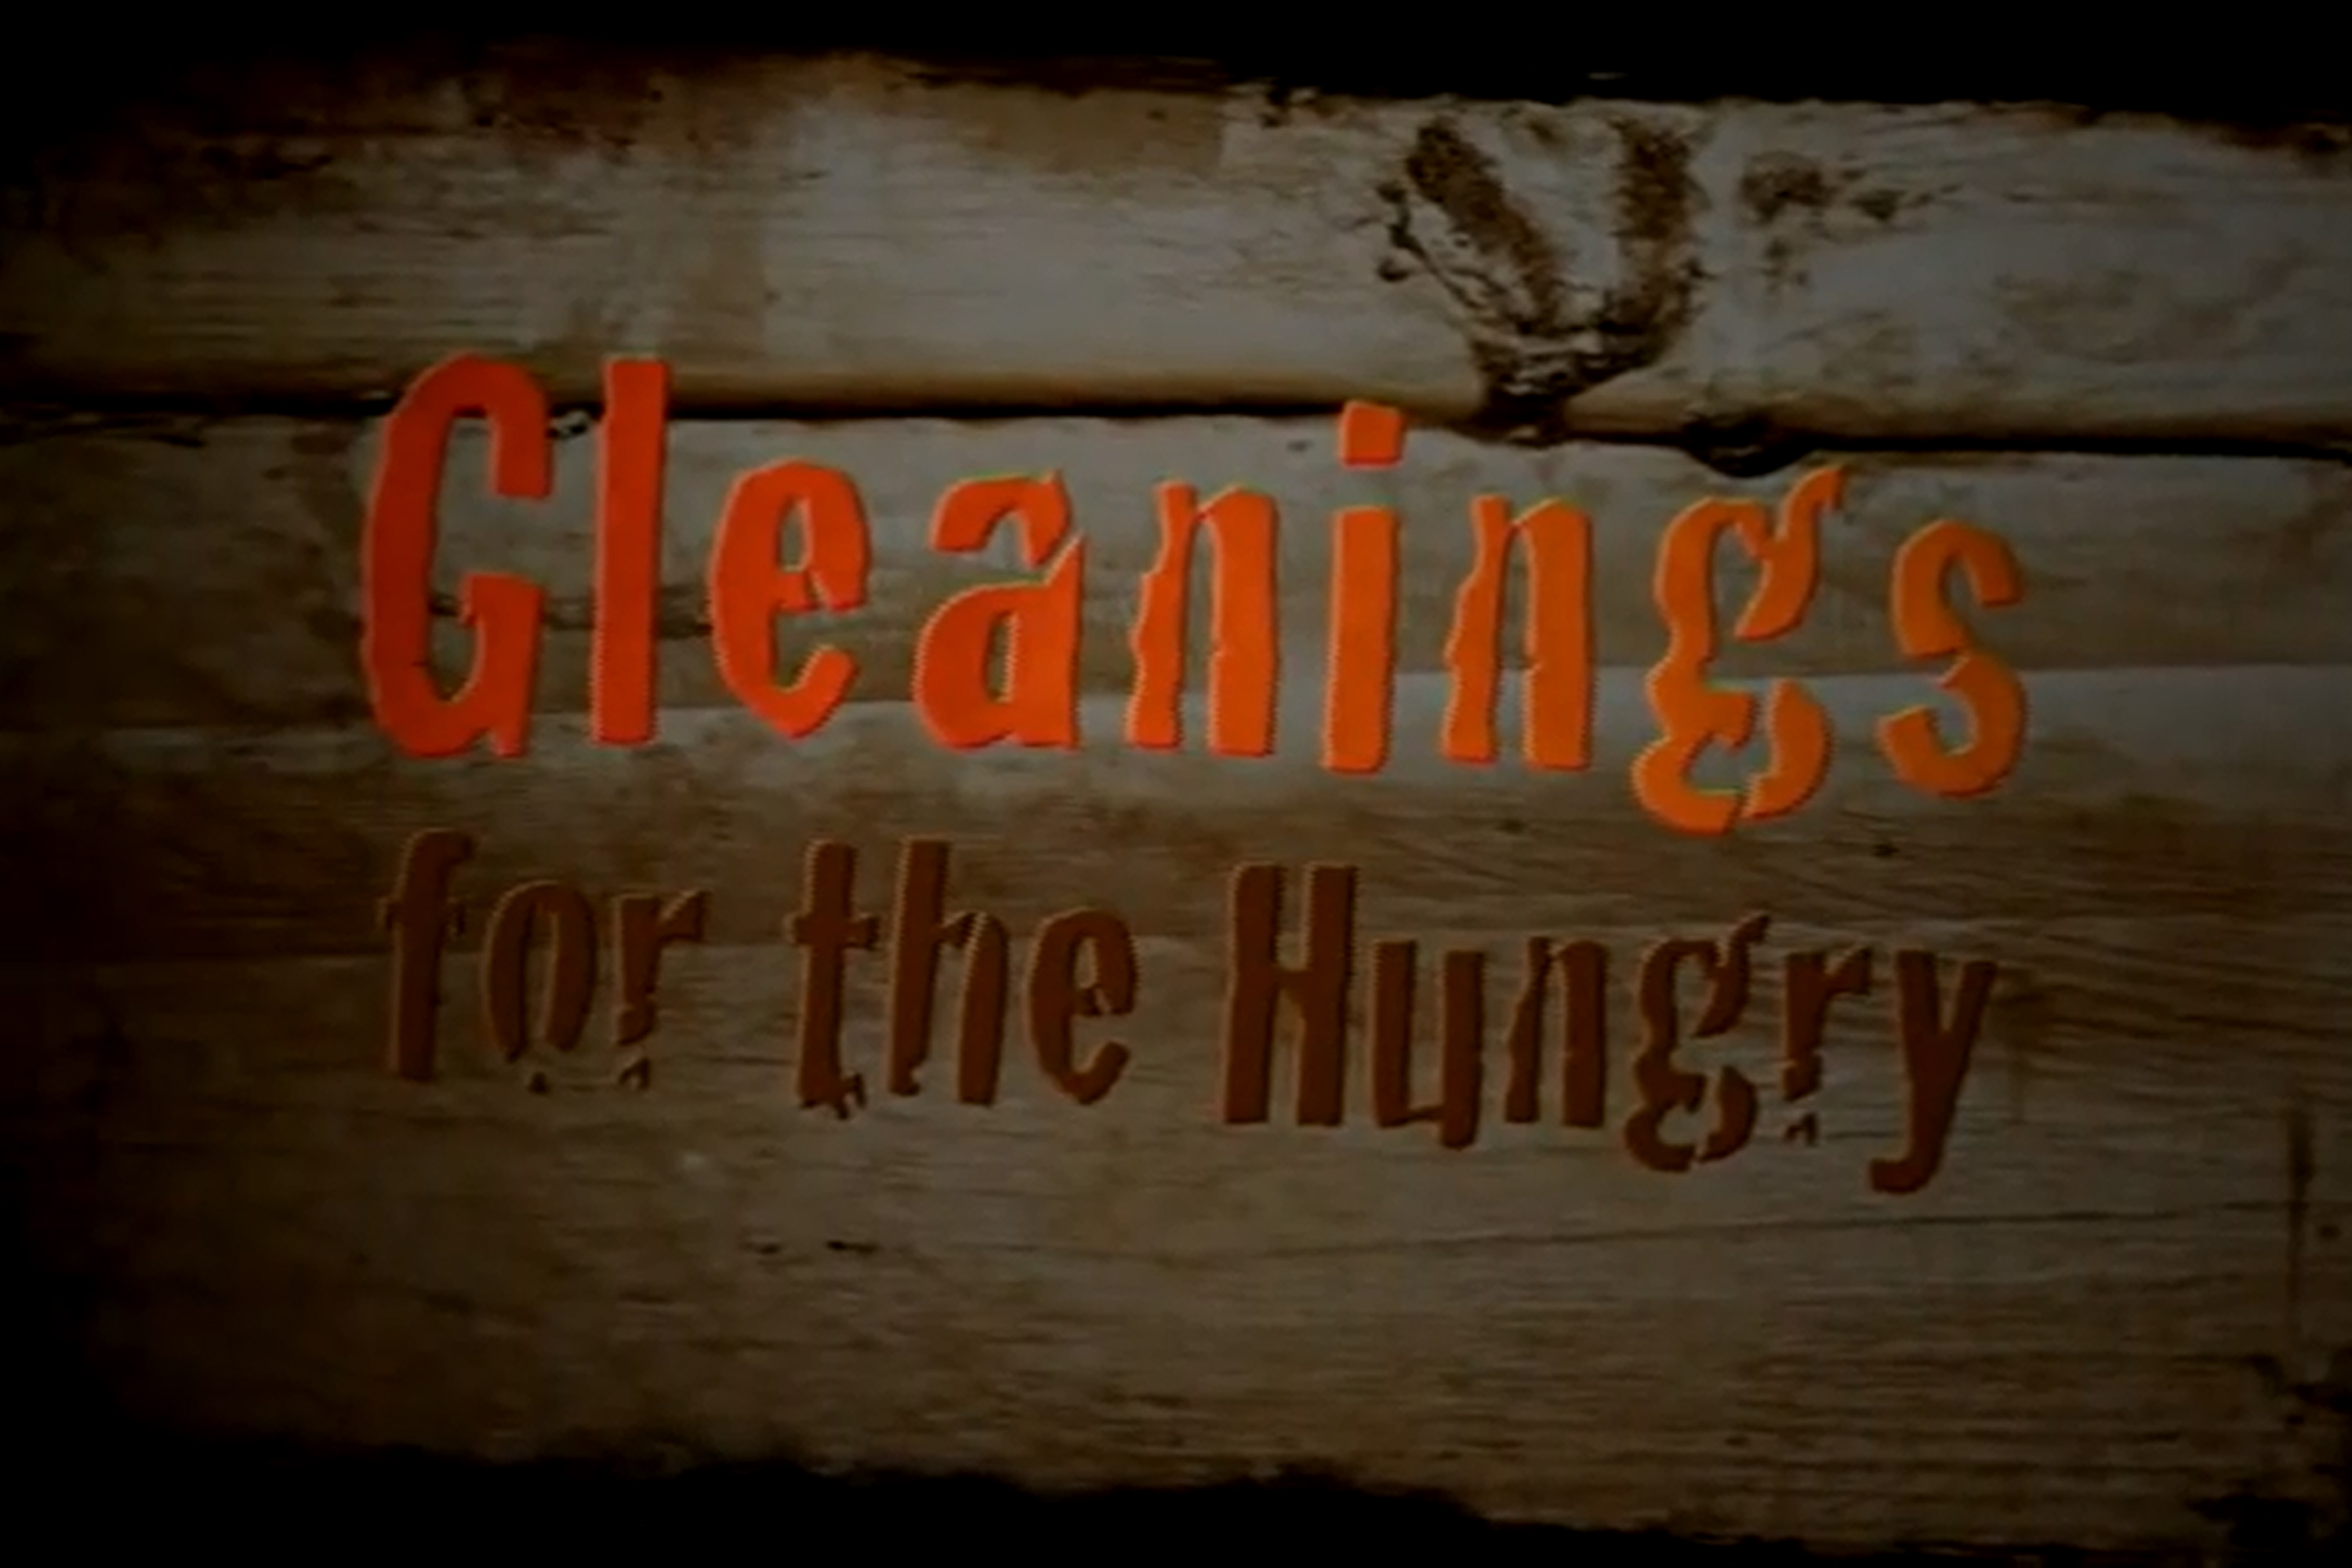 Gleanings_Promo